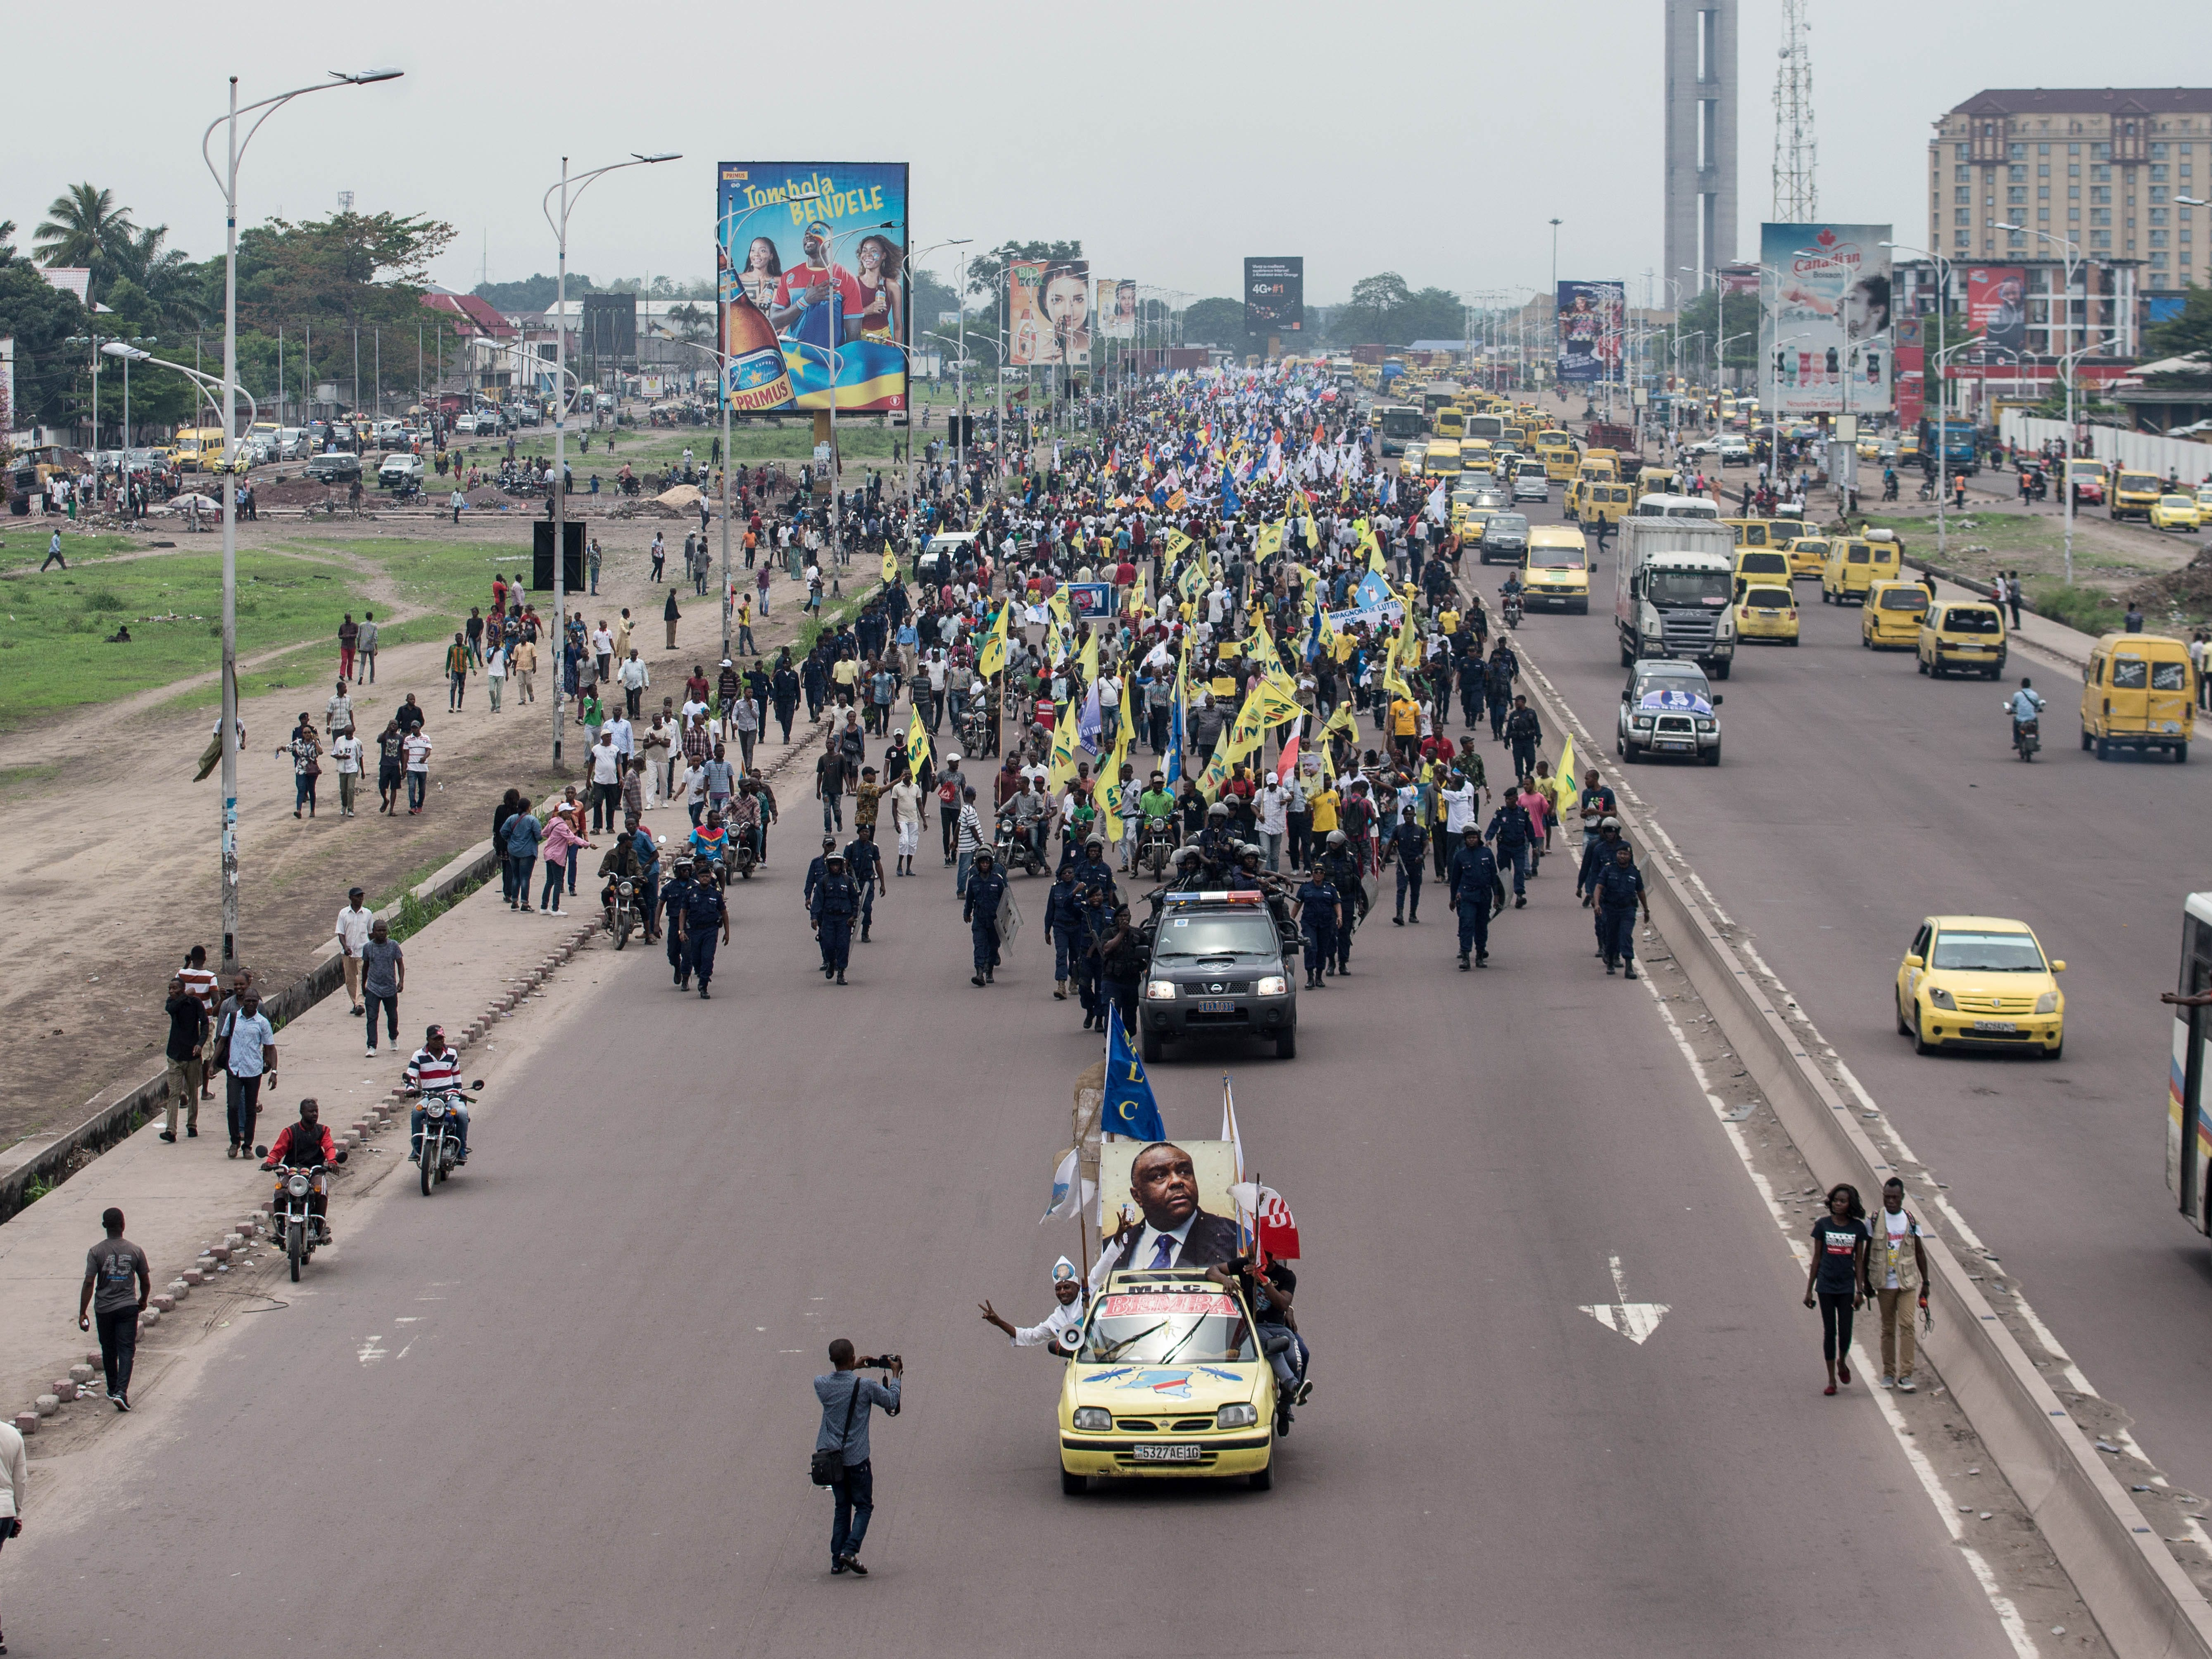 Opposition supporters demonstrate against the electoral process scheduled for the December elections near the capital of Kinshasa, on Oct. 26, 2018. Thousands rallied across the Democratic Republic of Congo seeking the withdrawal of electronic voting machines in a long-delayed election due at the end of December, saying they would be misused to rig the results.